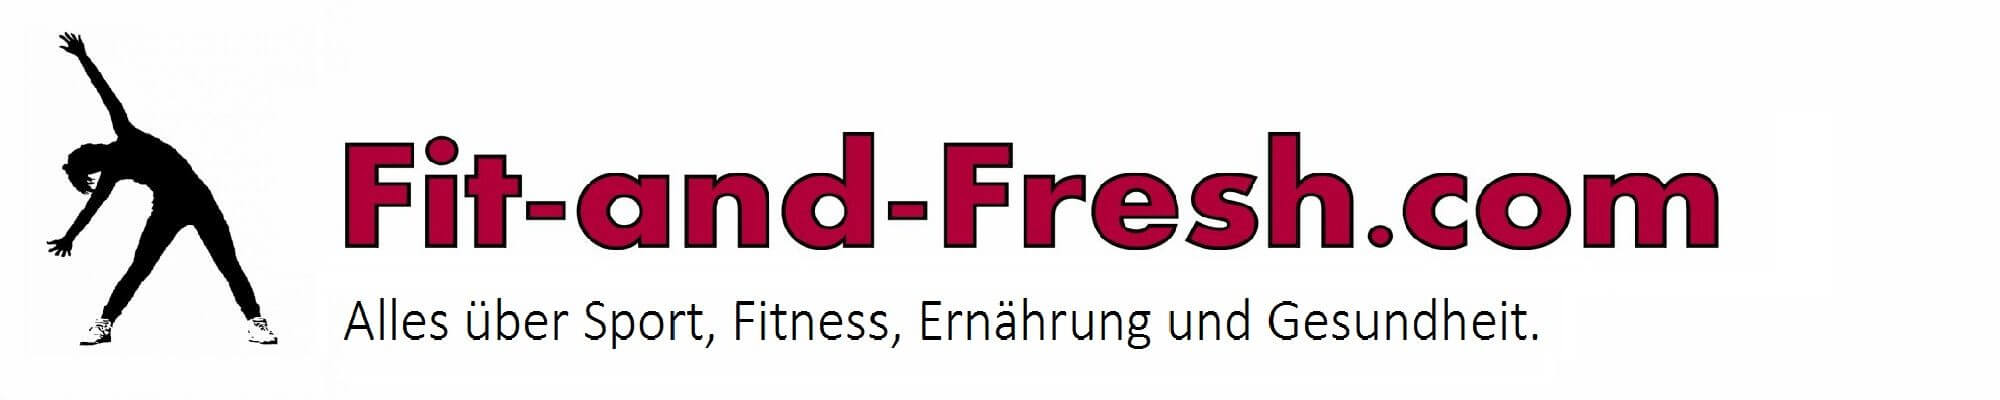 Fit-and-Fresh.com